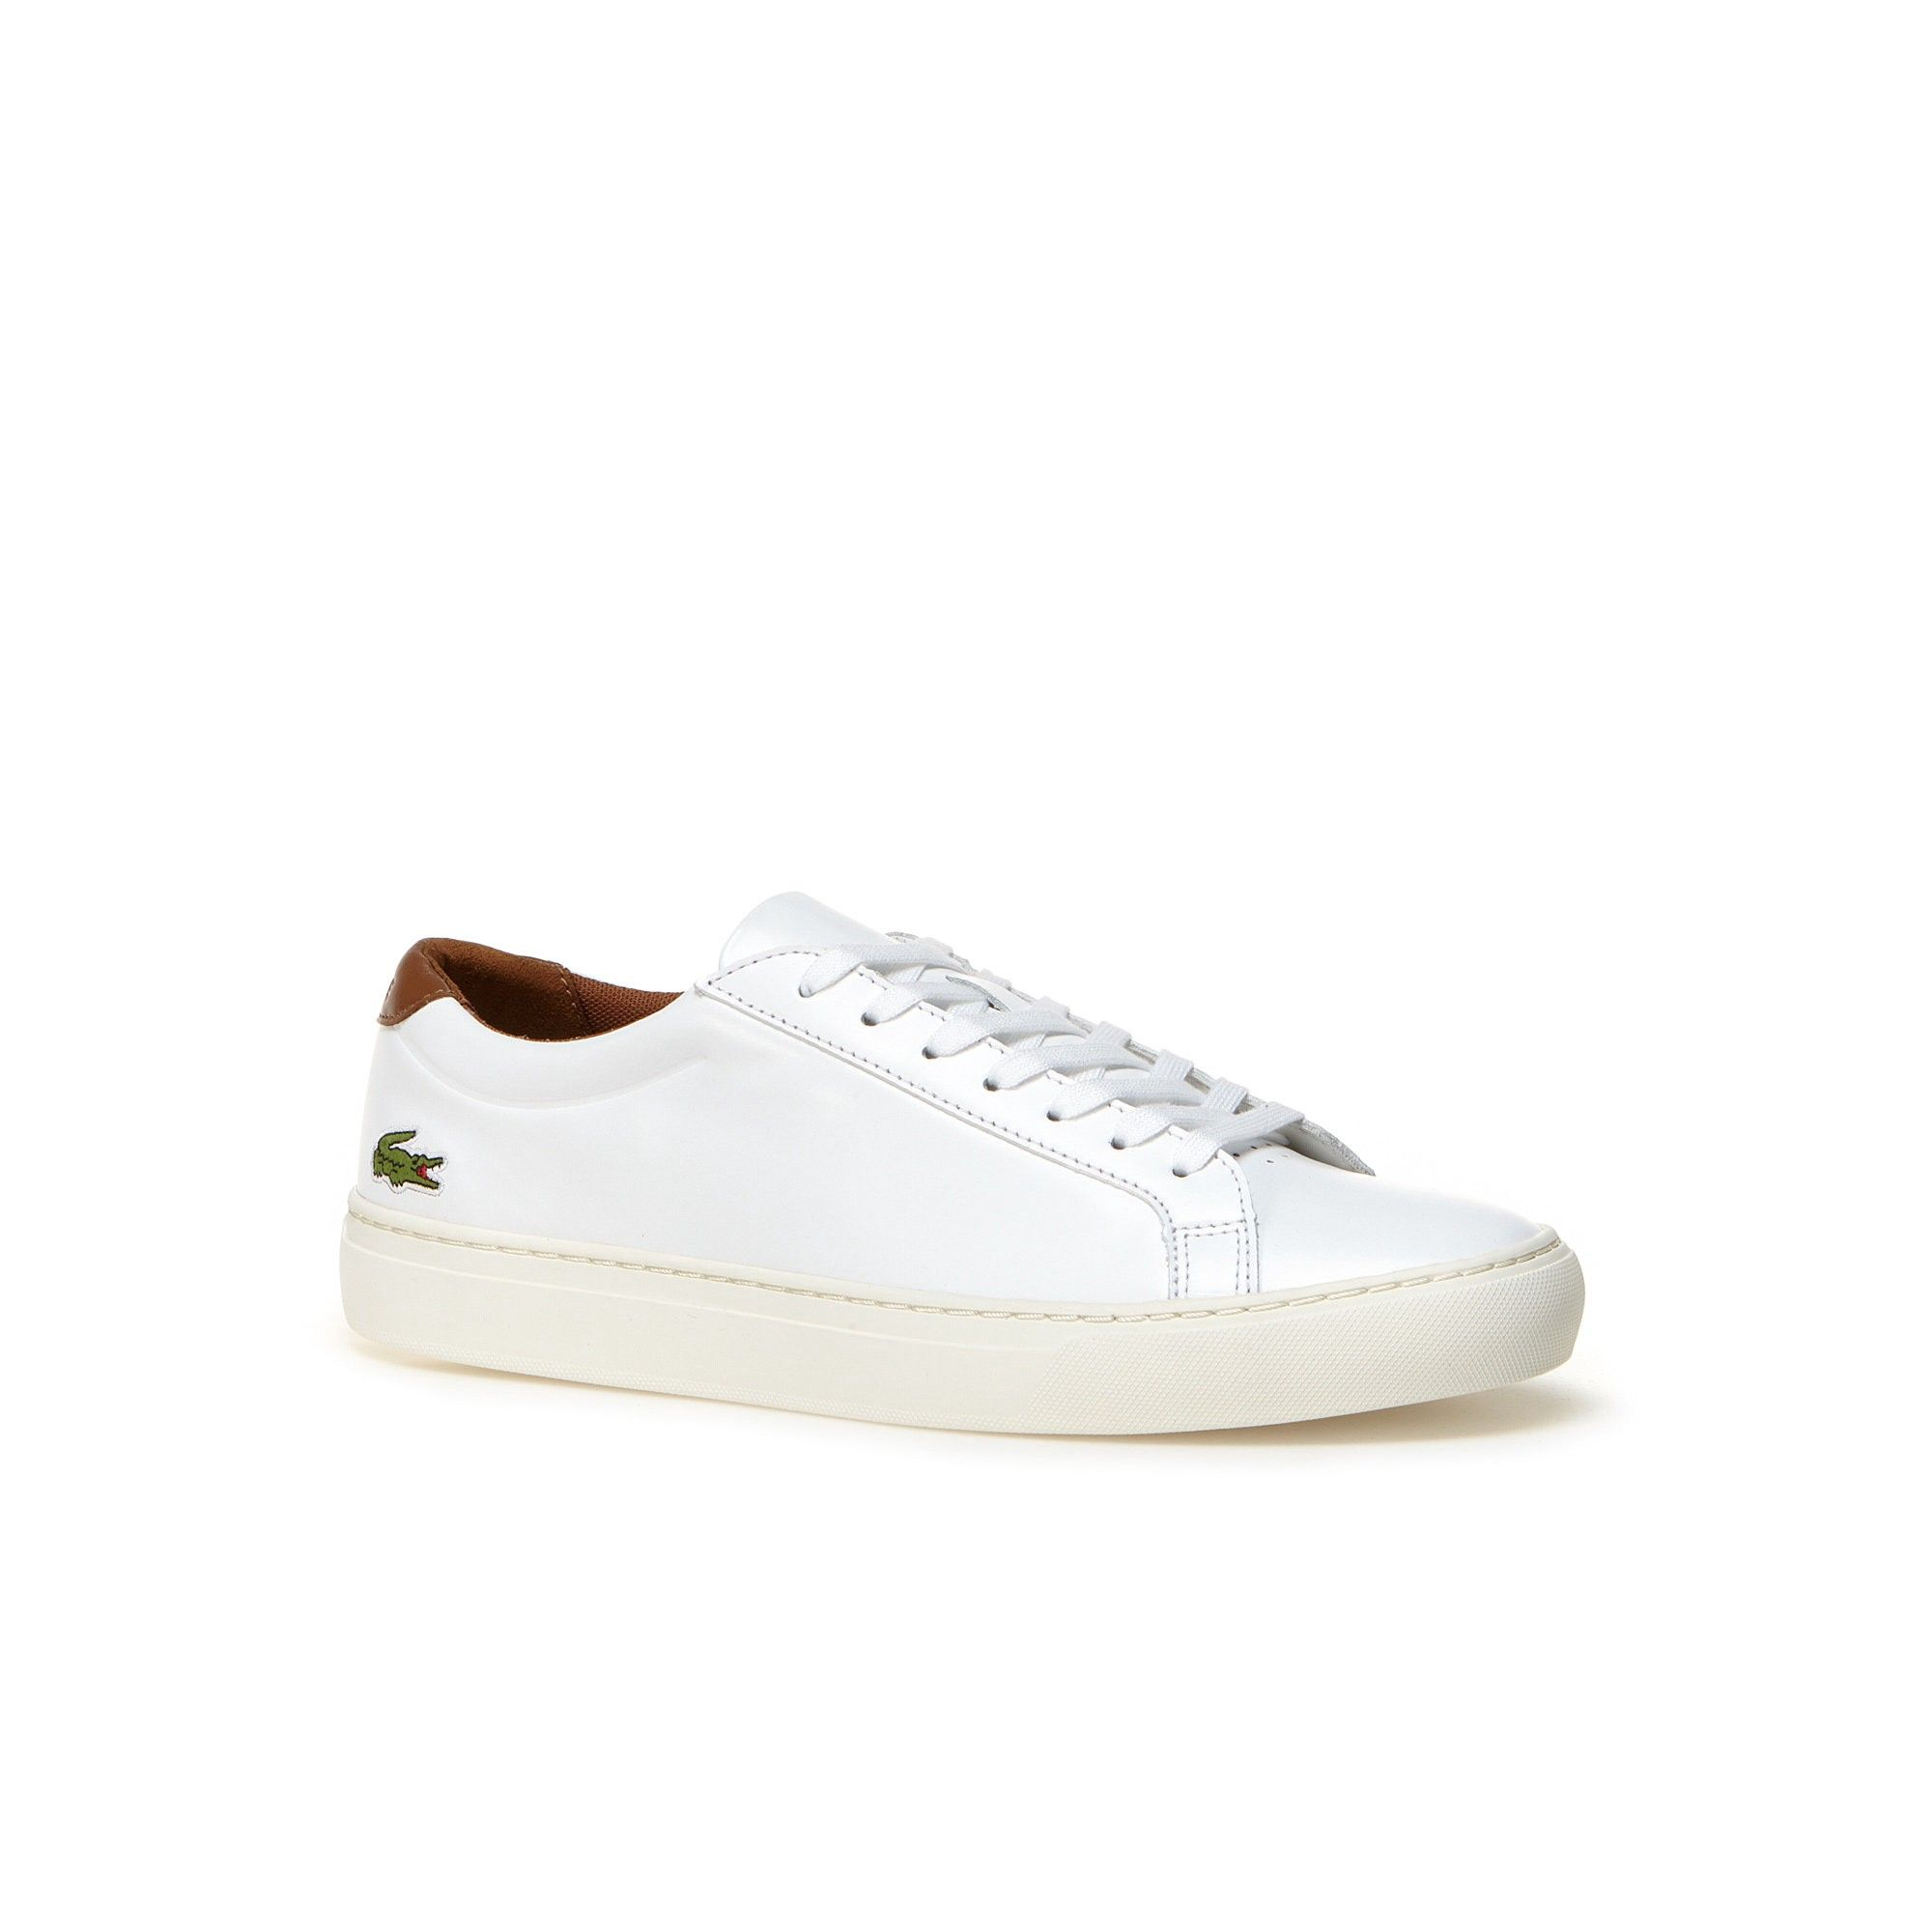 0859a093eb8df5 LACOSTE Men s L.12.12 Leather Sneakers - white brown.  lacoste  shoes